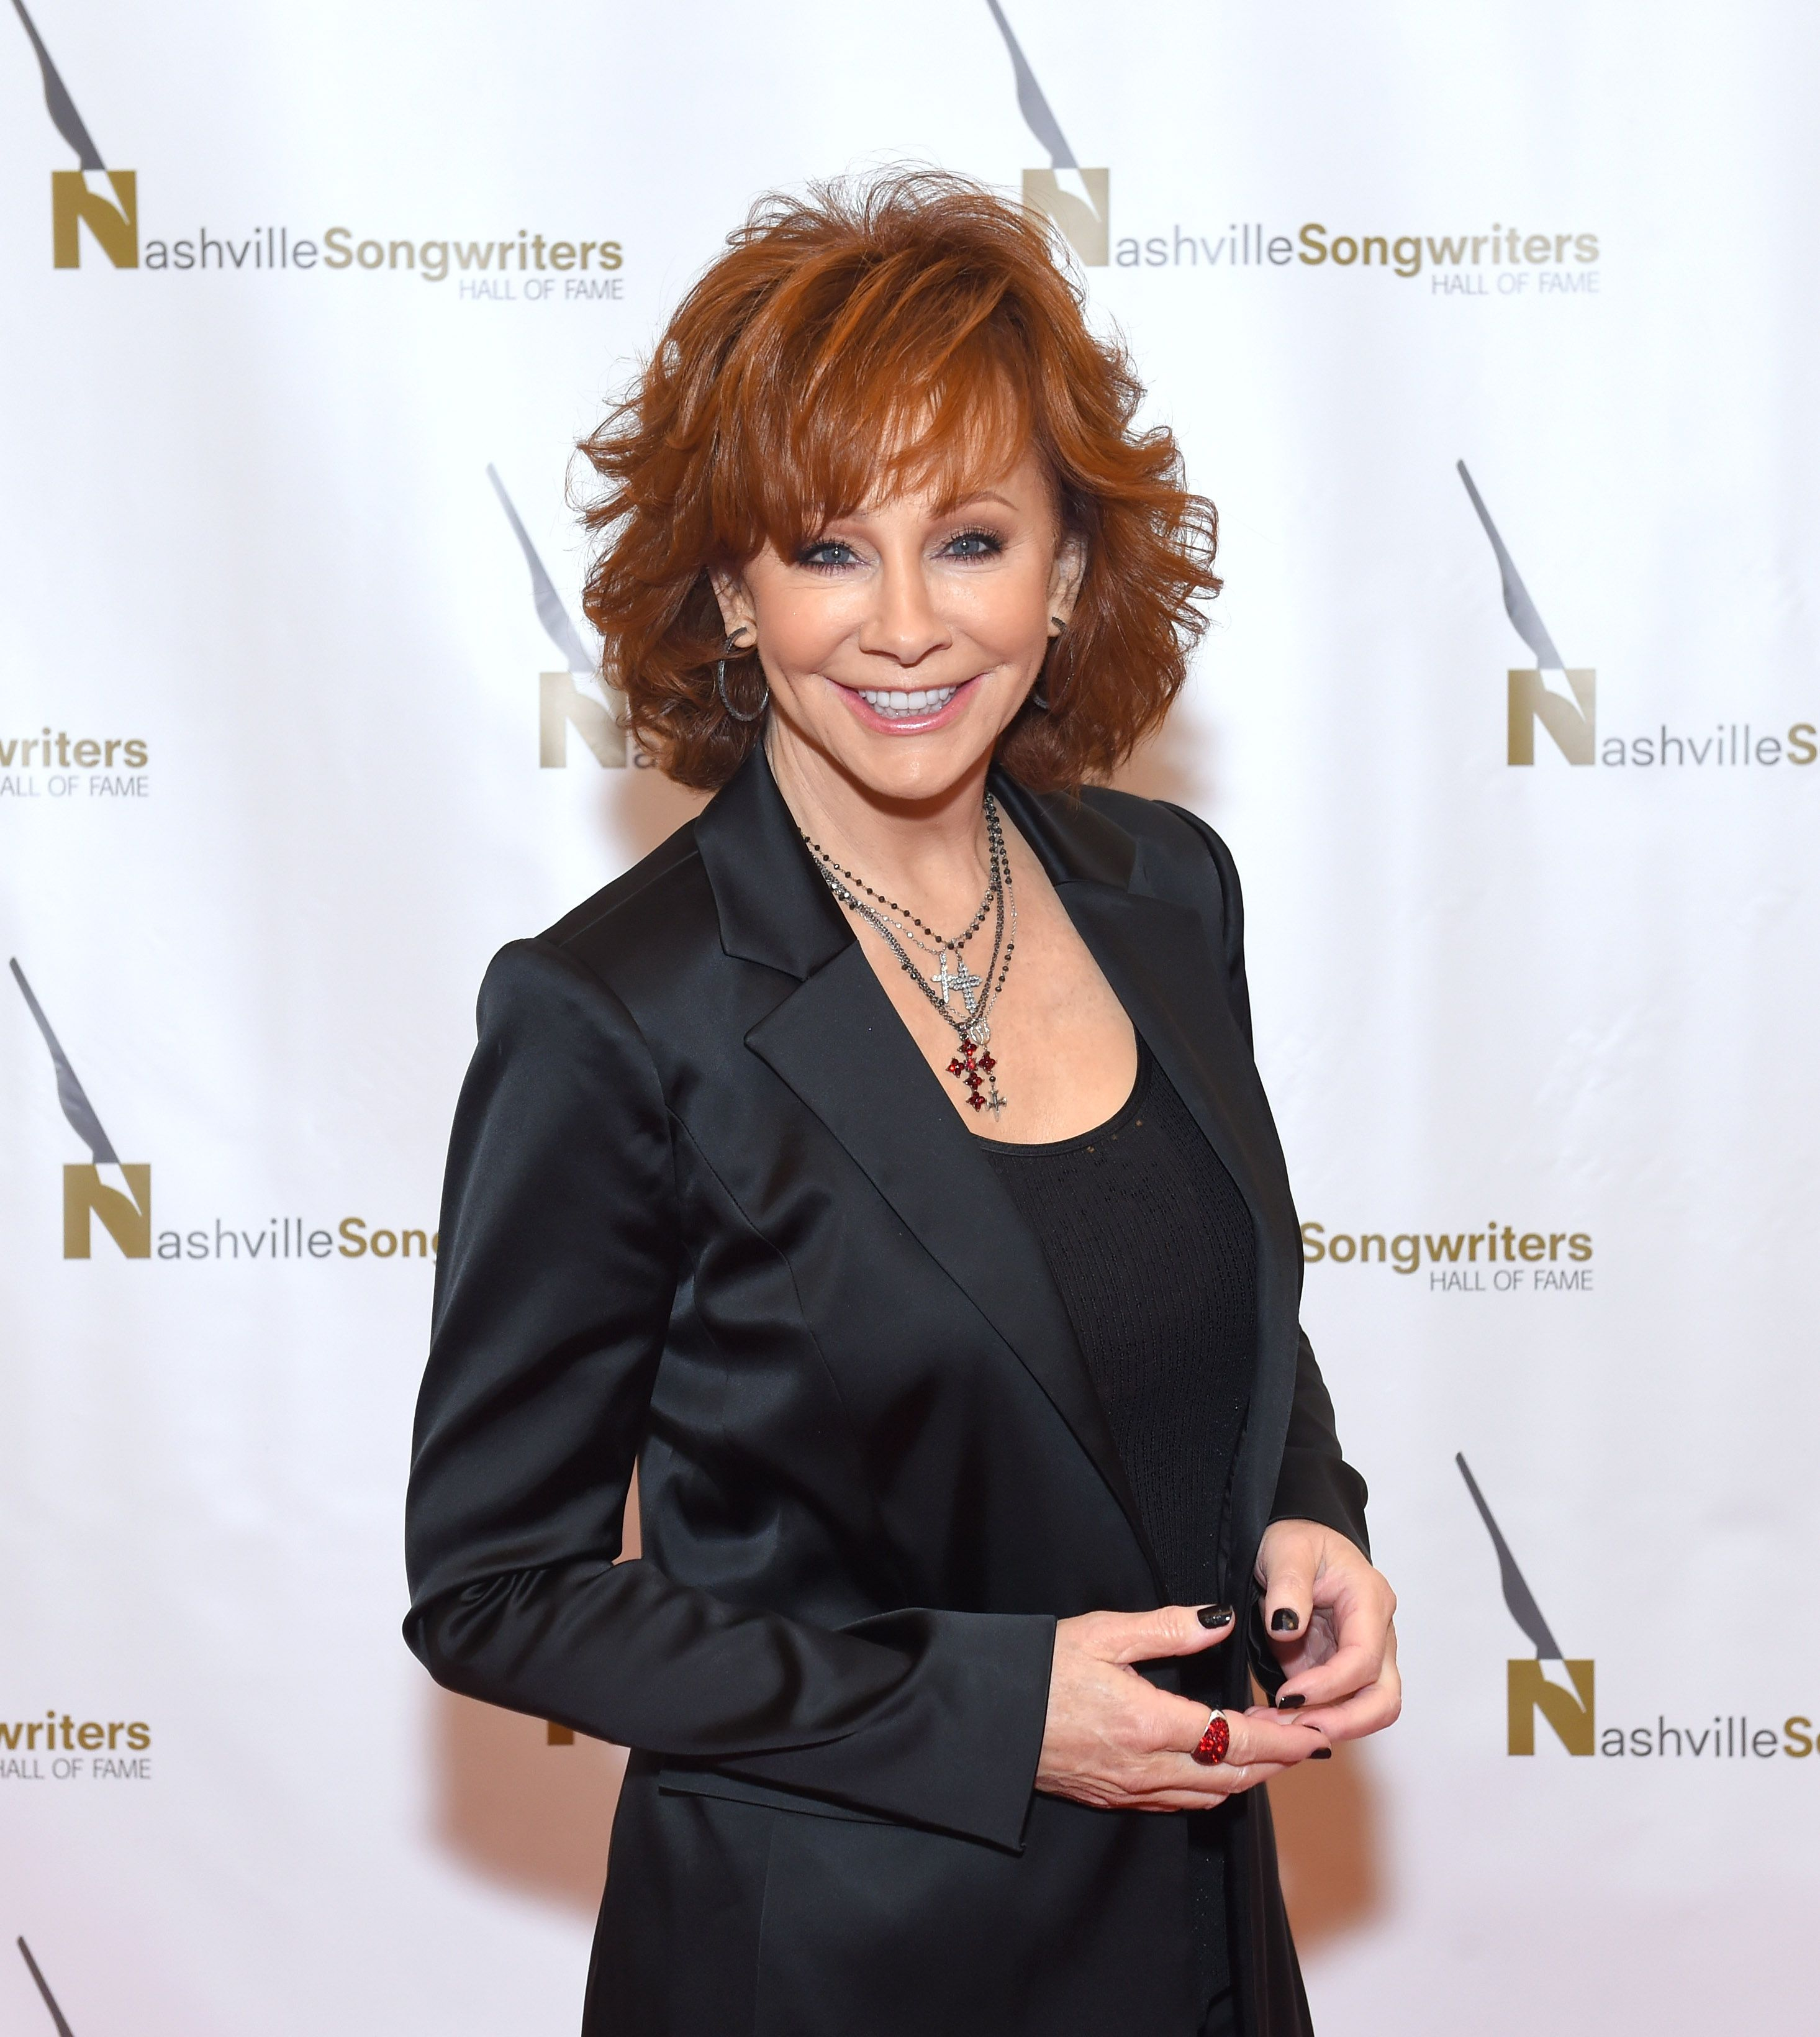 Country artist Reba McEntire at the 2018 Nashville Songwriters Hall Of Fame Gala at Music City Center on October 28, 2018 in Nashville, Tennessee. | Photo: Getty Images